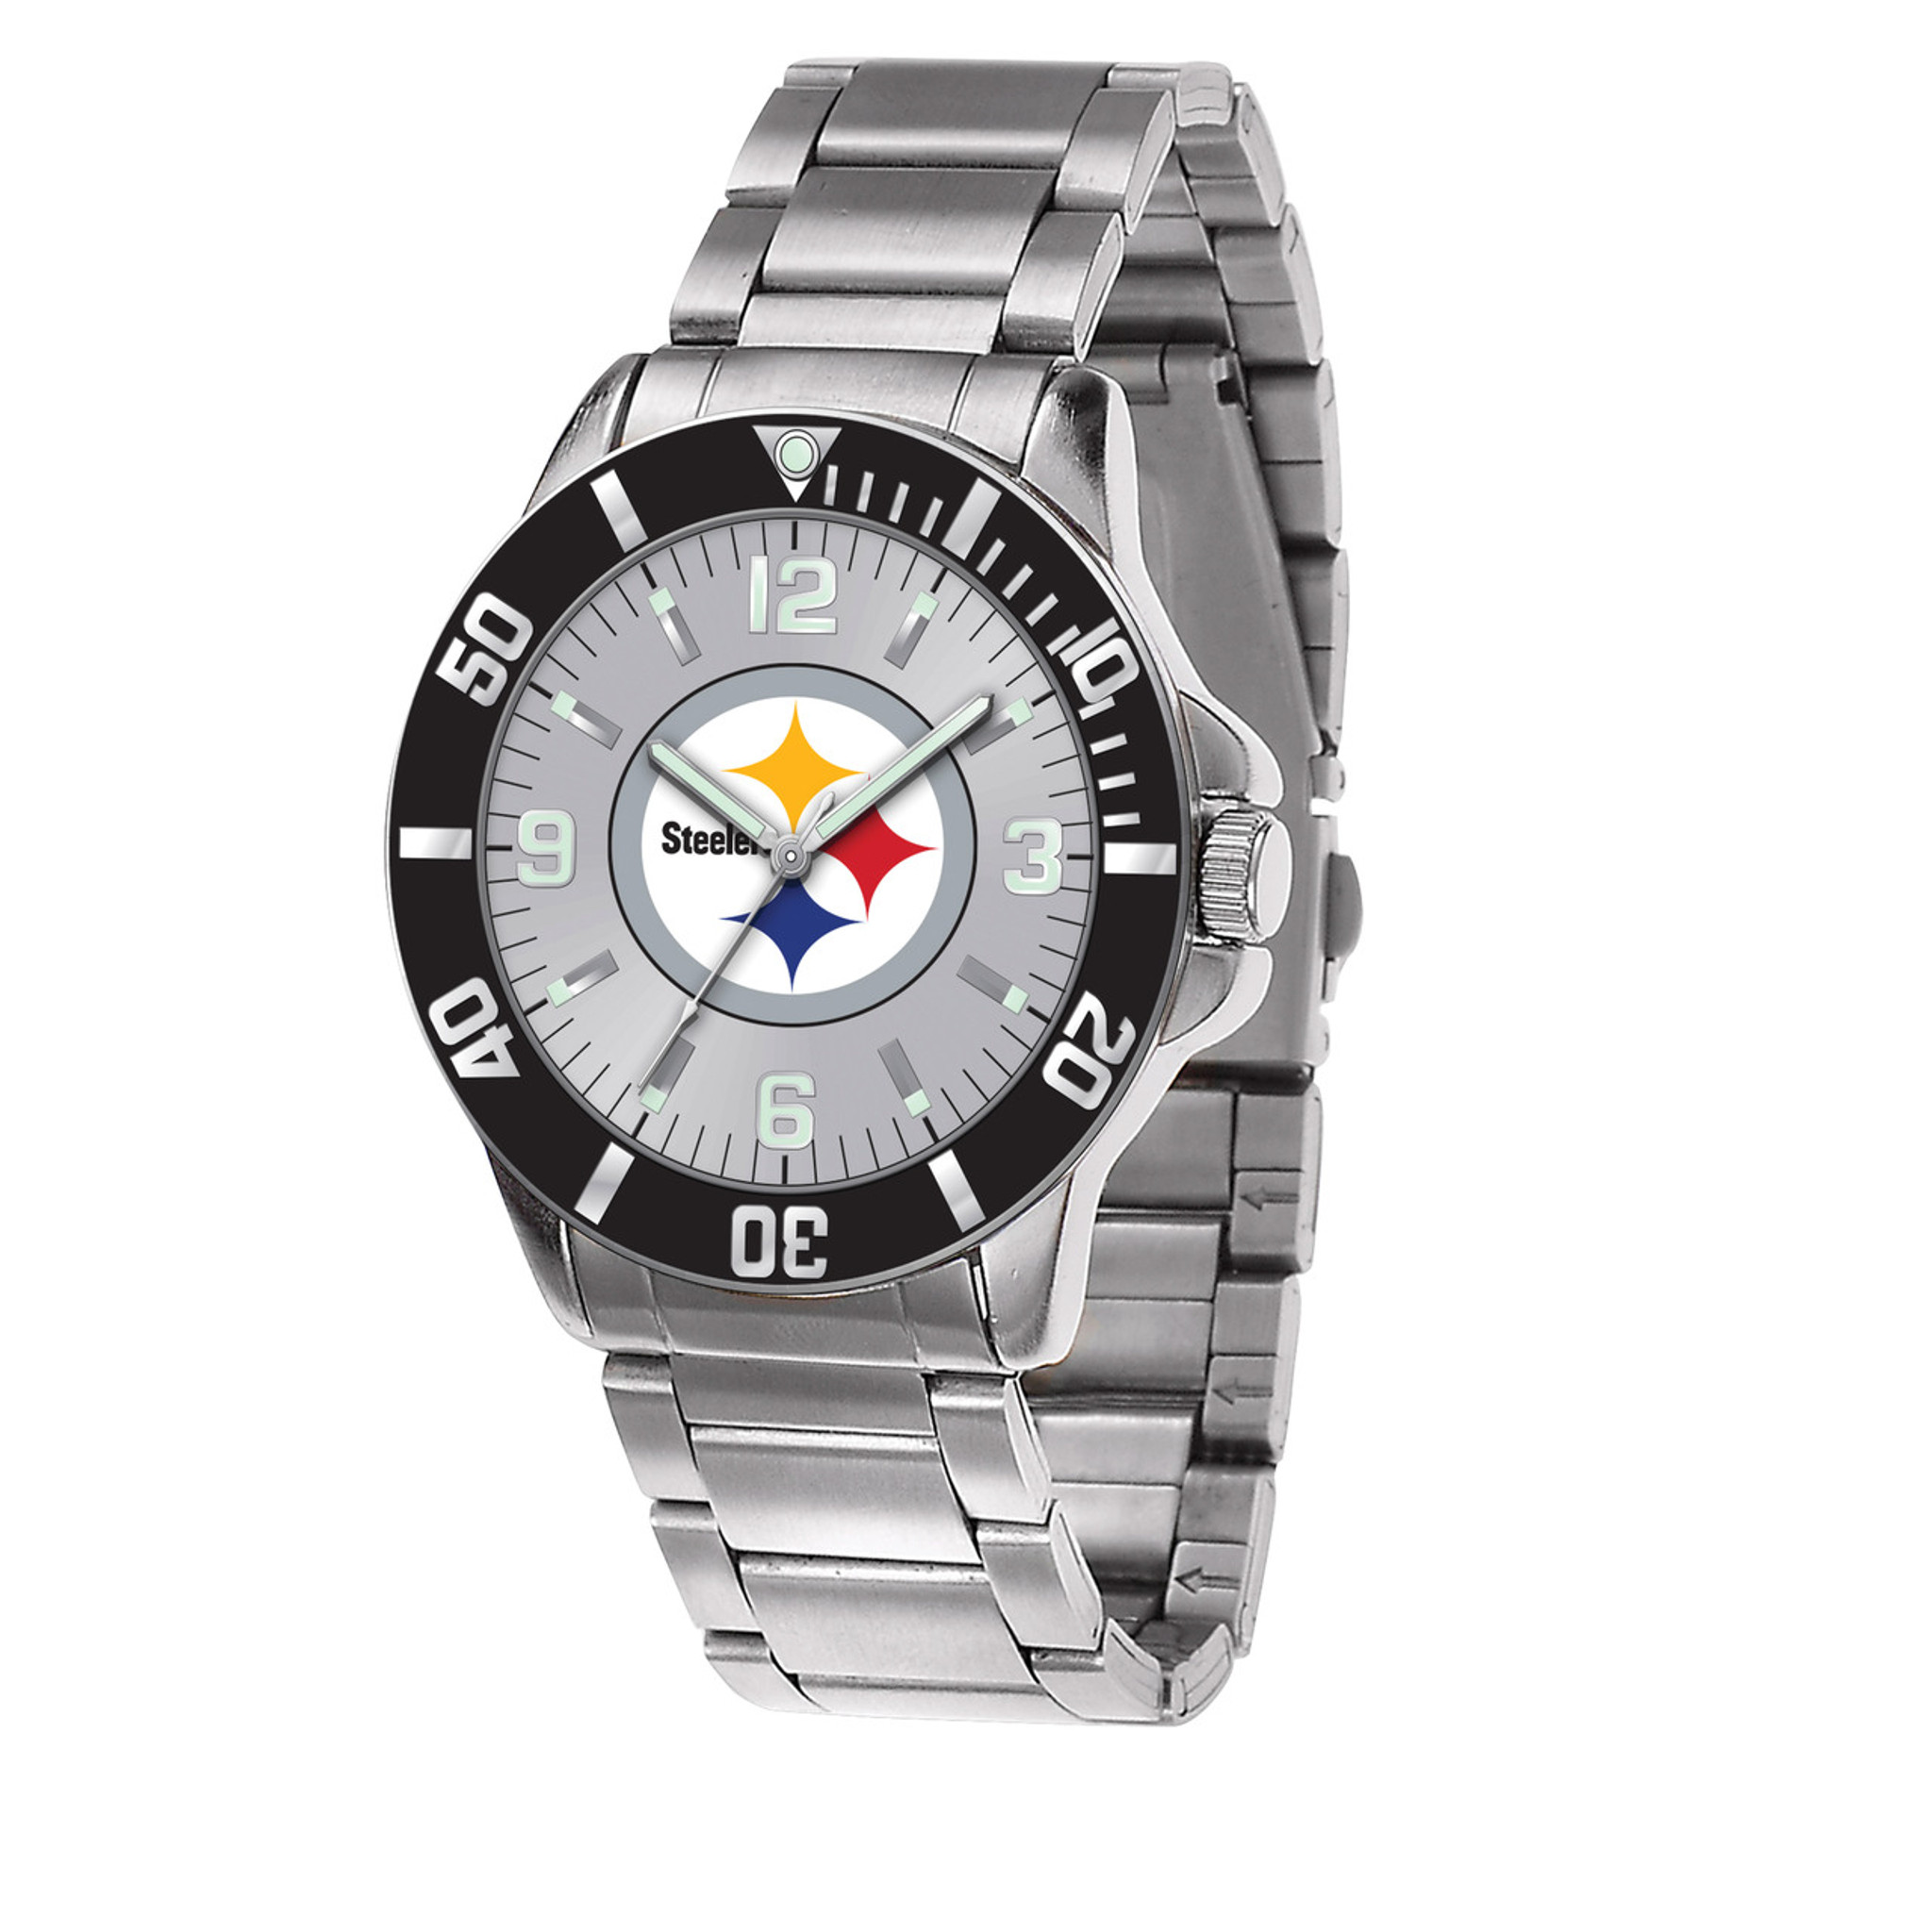 The Official Steelers Pro Shop | Steelers® Official Pro Shop